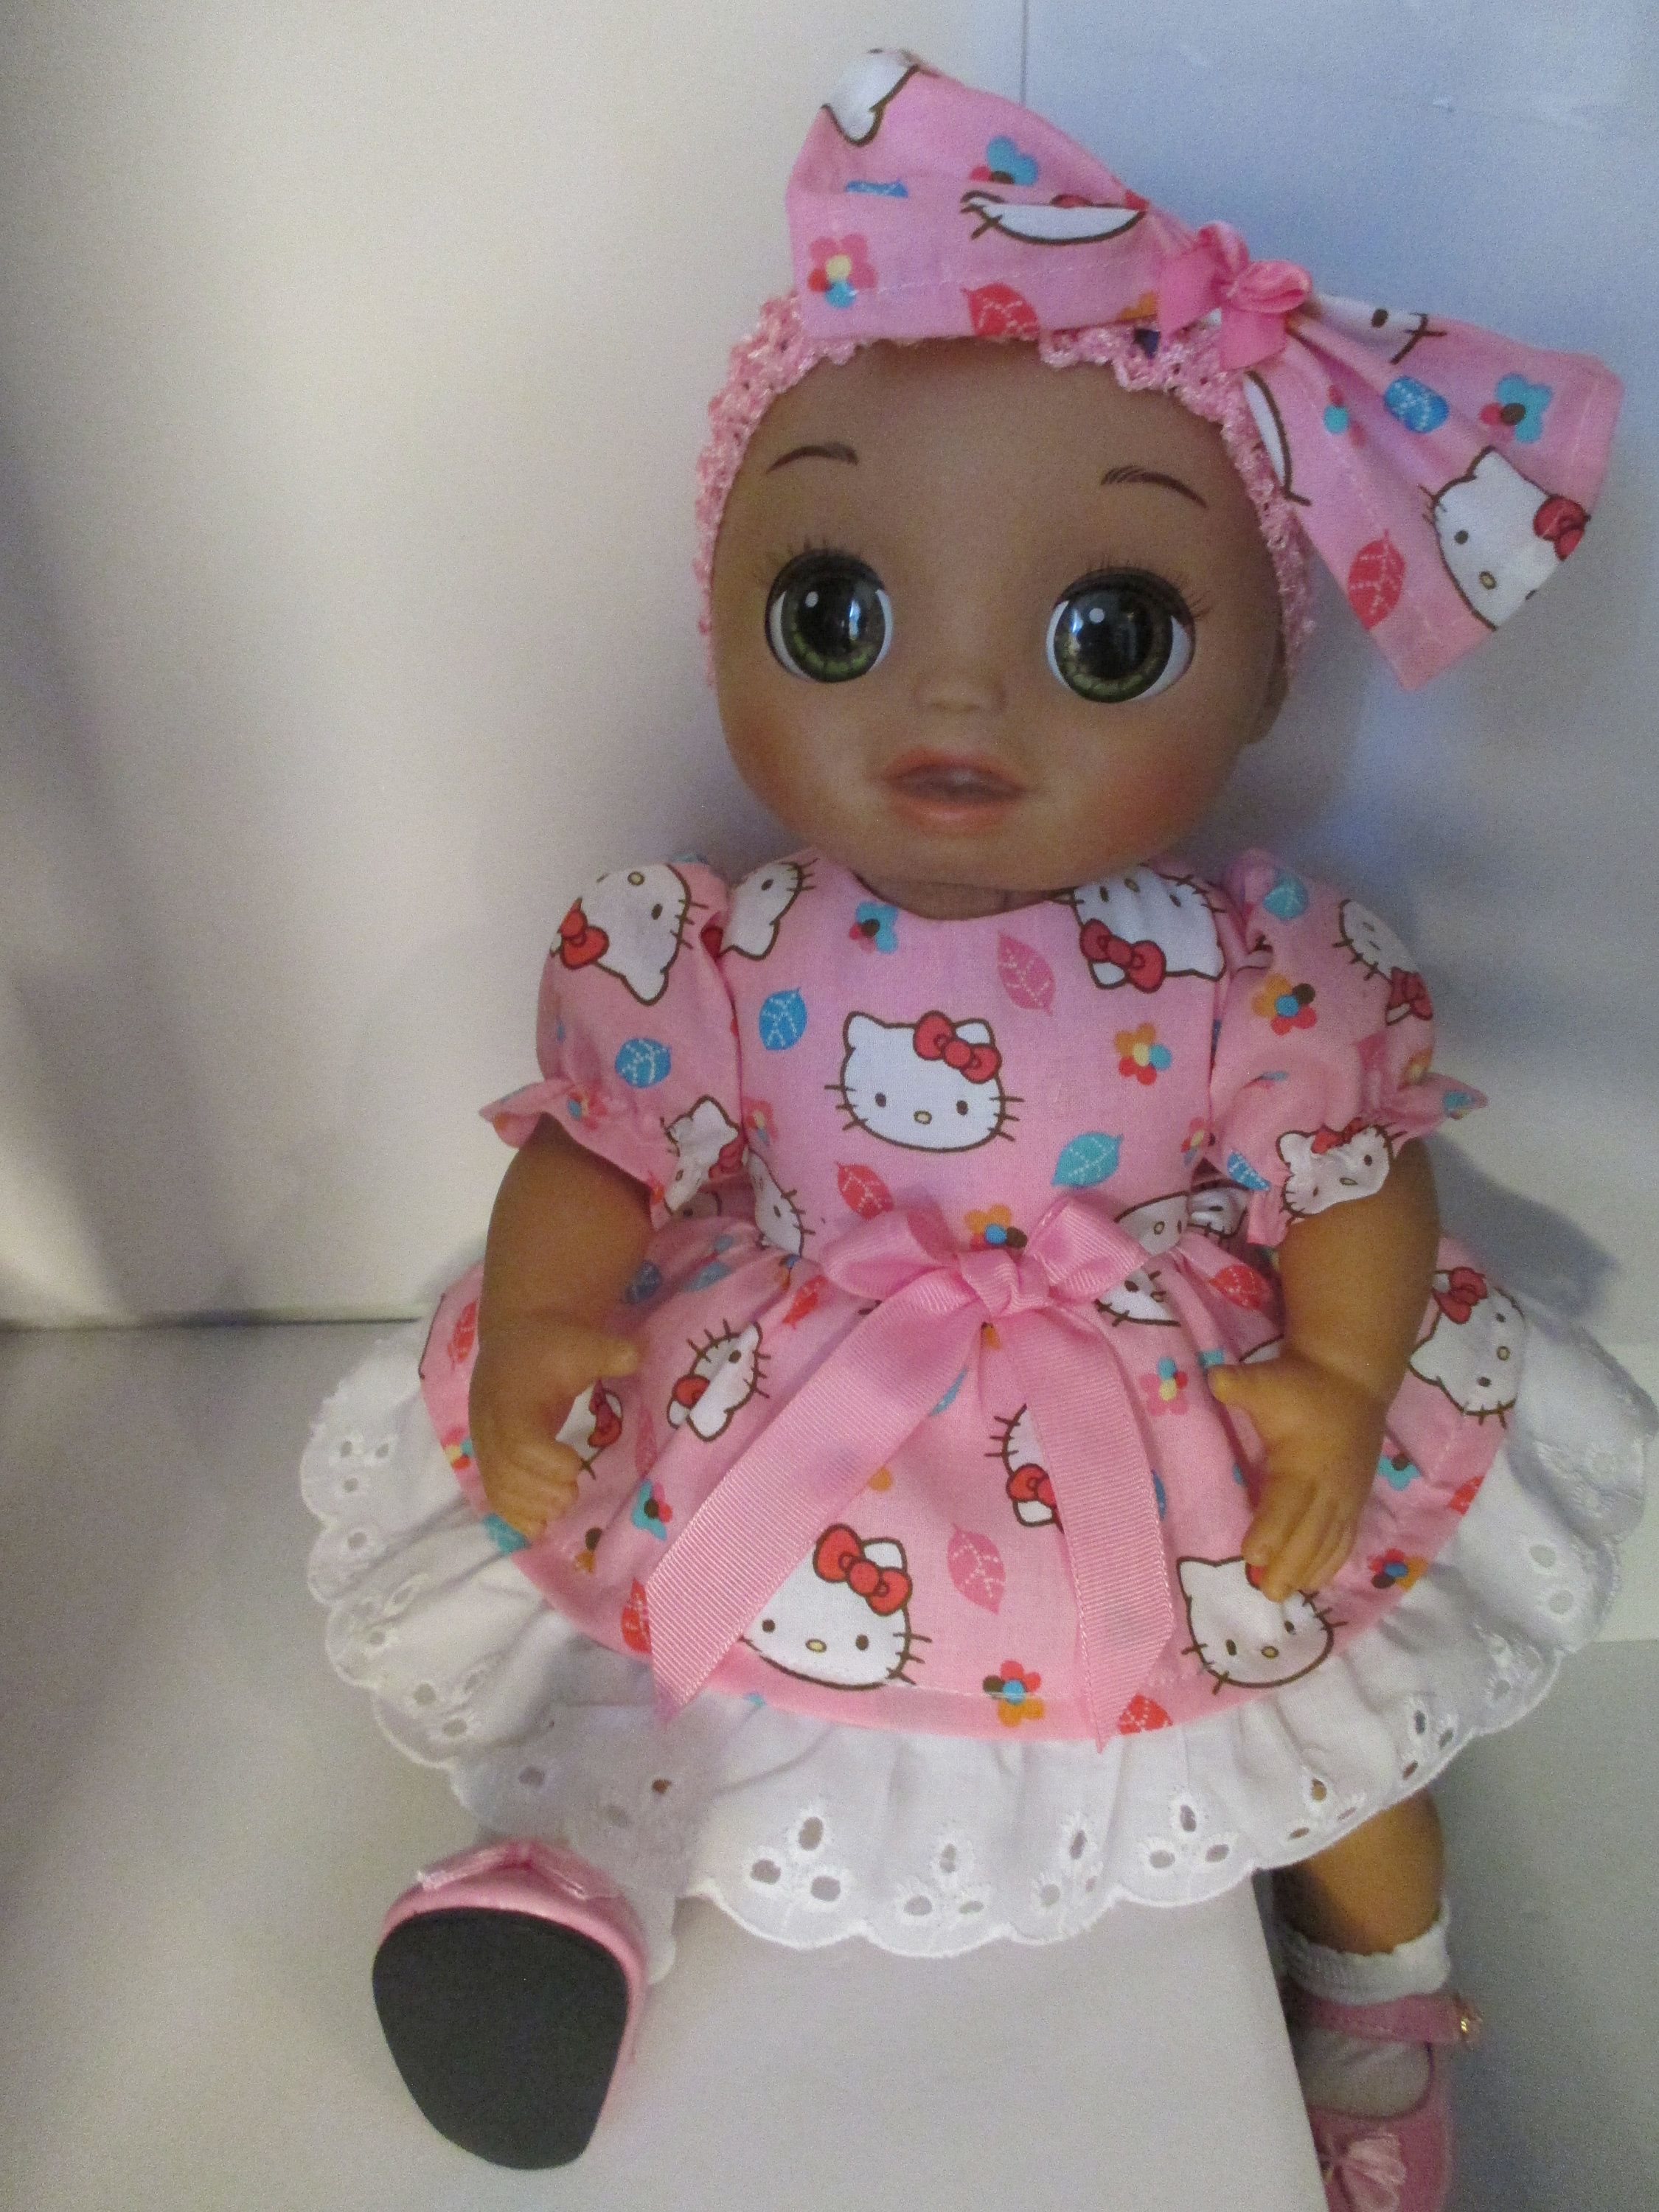 Baby Alive As Real As Can Be 5 Pc Hello Kitty Pink Puff Sleeves Dress Outfit Dress Headband Undies S Baby Alive Doll Clothes Baby Alive Real Looking Baby Dolls